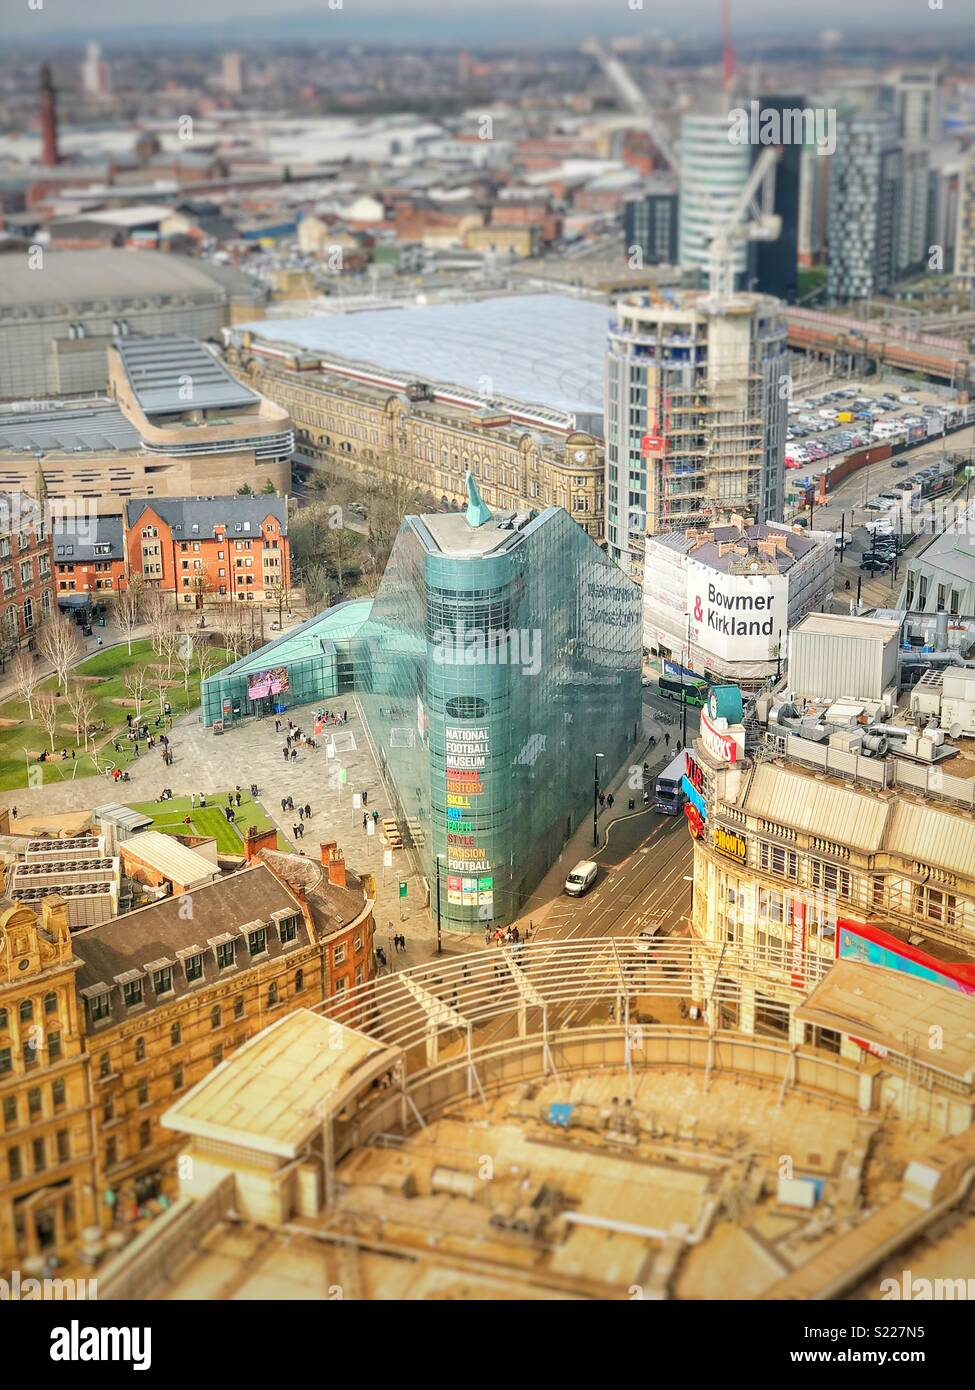 National Football Museum - Manchester - Stock Image